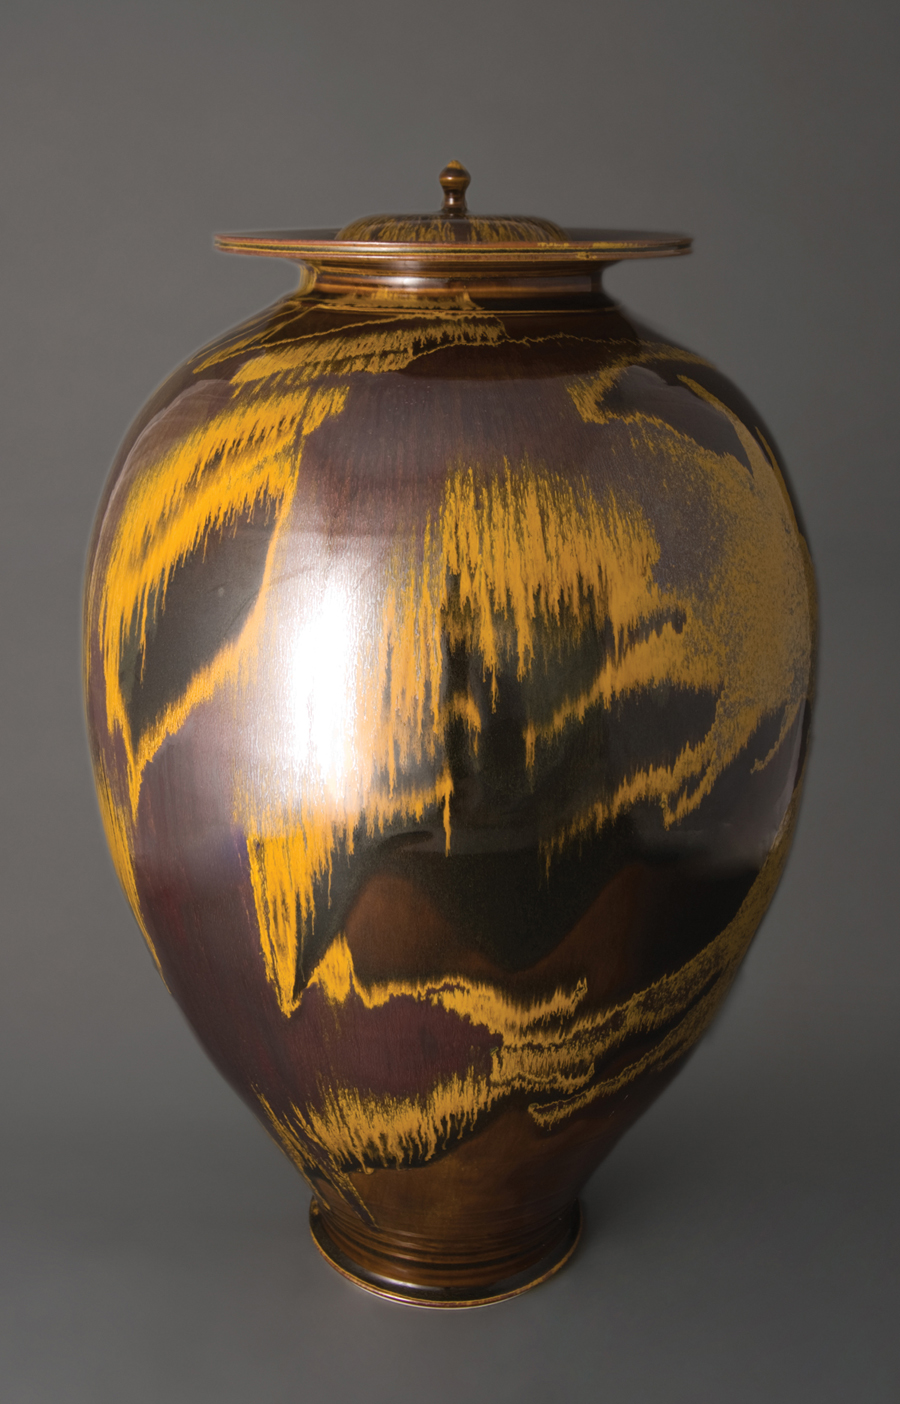 "Brother Thomas Bezanson  Vase with Alternate Lids, Iron Yellow Glaze  Porcelain 24 x 15 x 15"" TH1234B"